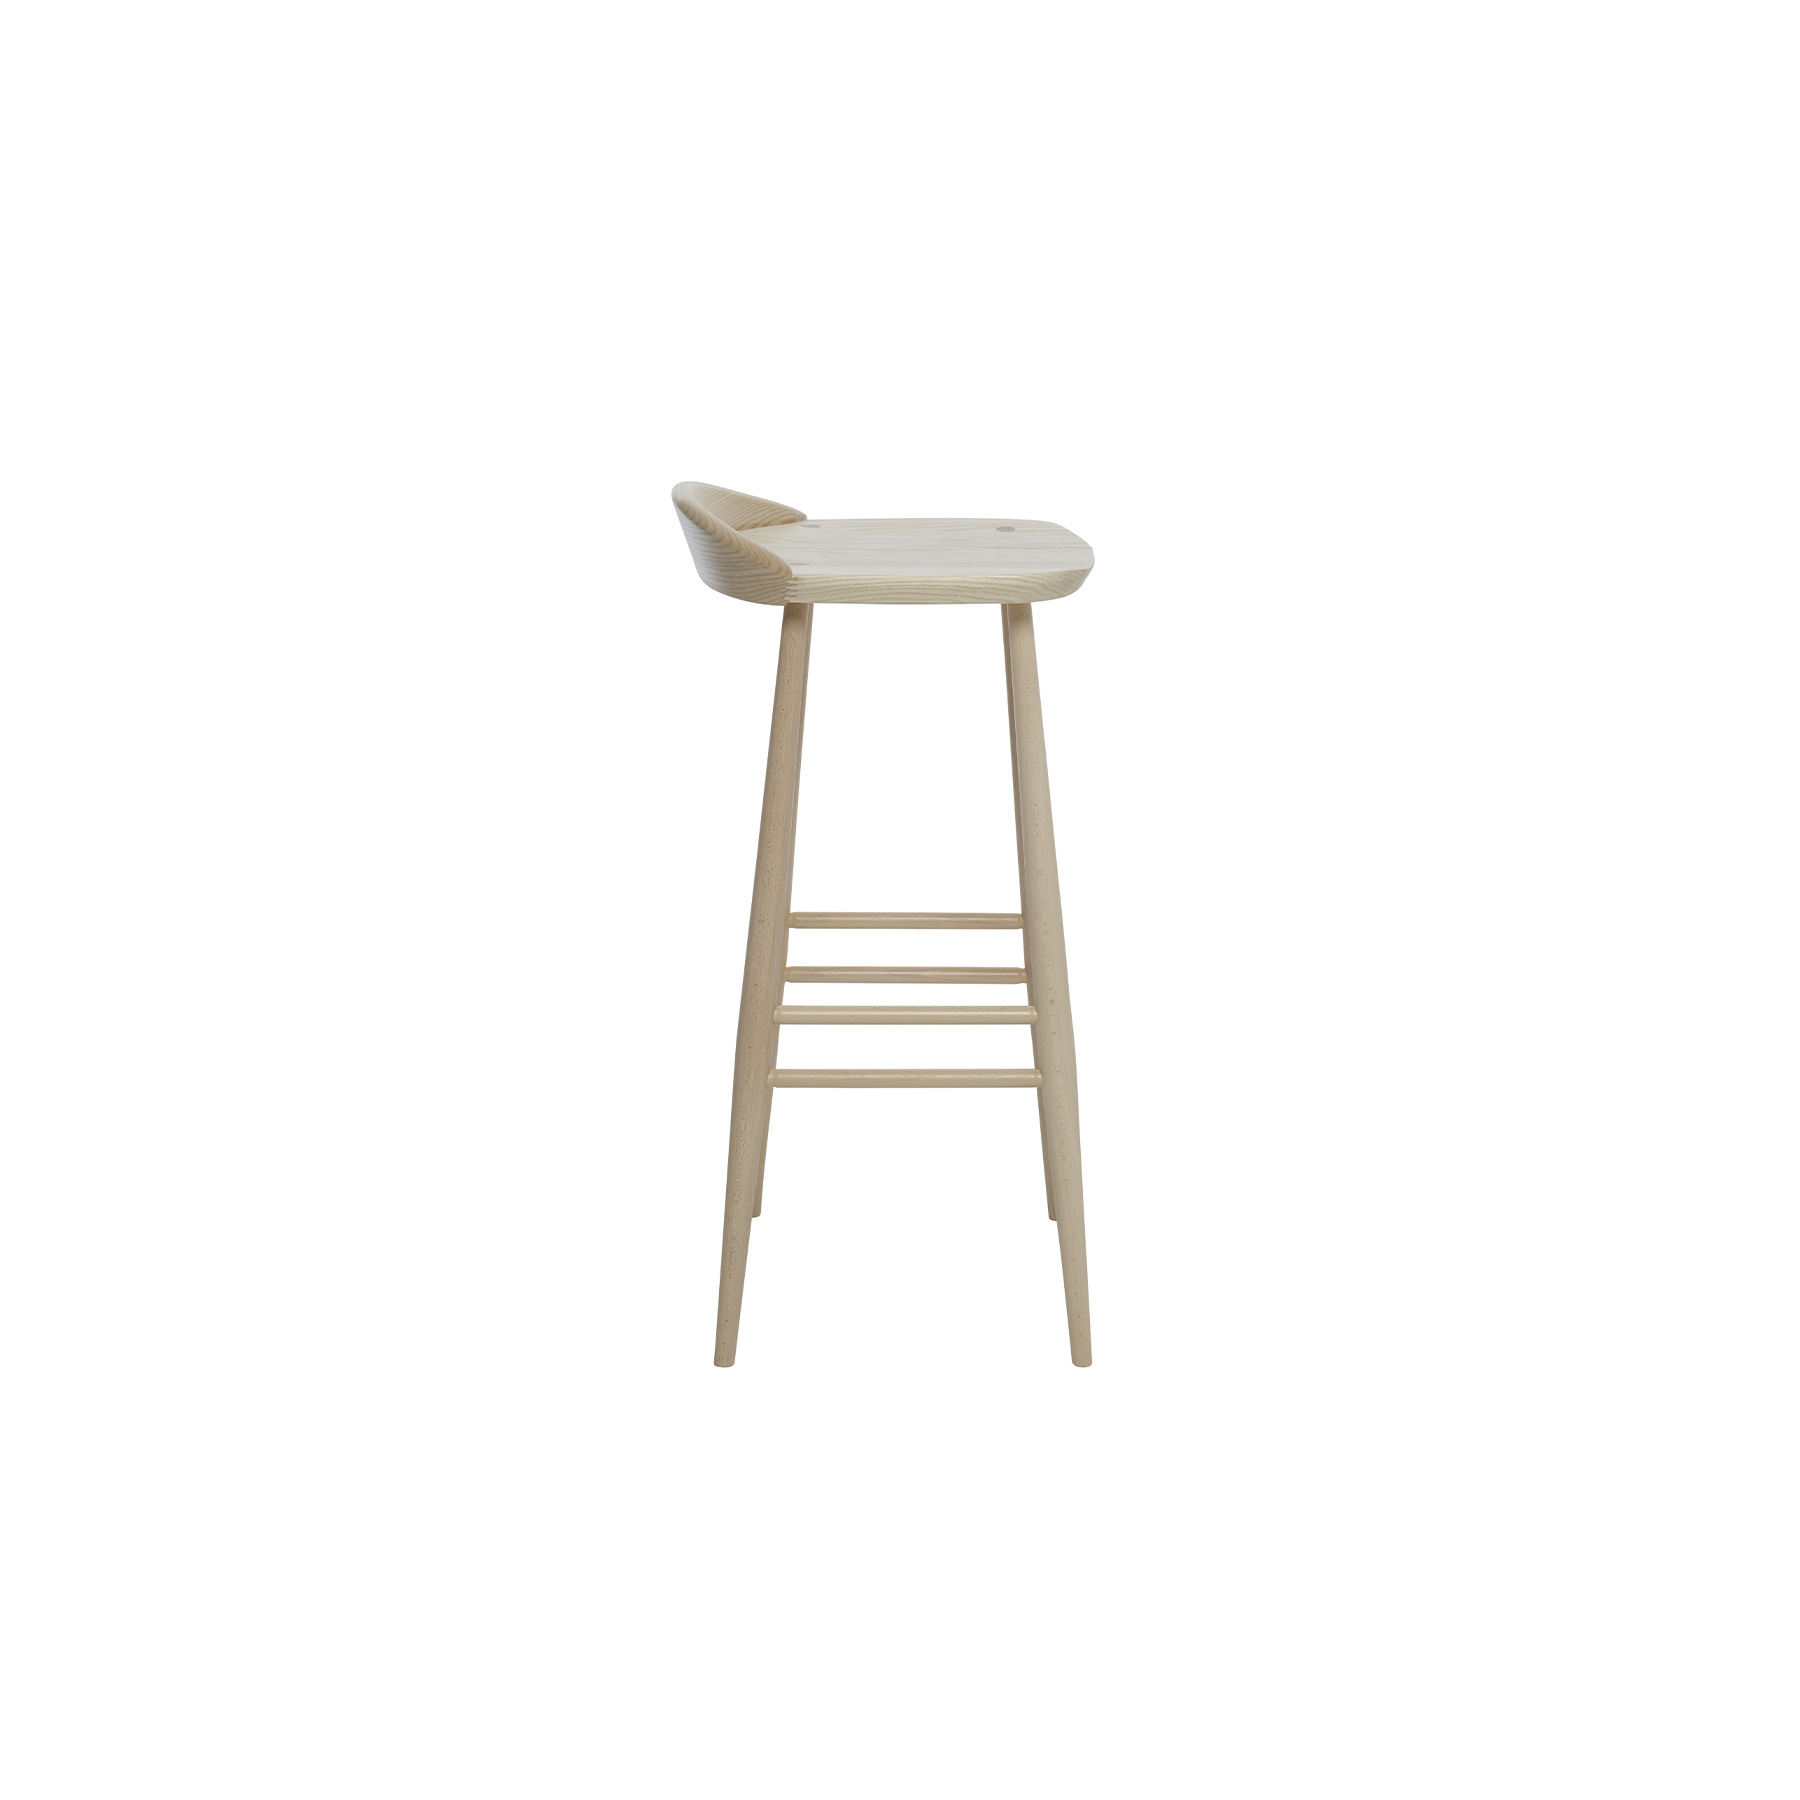 Originals Bar Stool With Back - <p>The Ercol Originals are pieces of timeless and classic design that never date or show their age. It is furniture that is as relevant and as functional now as it was when it was created in the 1950s and 1960s. This furniture was designed by Ercol's founder, Lucian Ercolani, who drew for his inspiration on the time-proven local design and craft in the Chiltern Hills around where he lived and built his first factory in 1920 in High Wycombe. Using the strength of beech and the beauty of elm he carried this definition on into a huge variety of dining, kitchen, and school chairs and then extended the idiom into the low easy chair range epitomised by the 206 armchair and the studio couch. The beauty of the colour and the grain of the elm took Lucian on to use elm for the tables and cabinets of the Originals and the following Windsor range. Ideal for using at a breakfast bar this modern bar stool offers functionality and elegance. The ash seat is moulded for comfort and the tapered legs remind us that this piece is characteristical Ercol. Choose from a selection of wood lacquers as well as an assortment of bold paint finishes, this bar stool is ideal in any home. This bar stool is 75cm tall. An alternative 65cm version is also available. A feature of this bar stool is the classic Windsor wedge joint, where the leg of the chair goes right through the seat; a wedge is then inserted into a cut in the leg, forming a remarkably strong joint. Sanded off flush with the seat, the joint then provides a beautiful design element. This stool was originally made in very small numbers in our jig shop for use by our designers in the days when designers used pencil and paper and sat at drawing boards.</p>